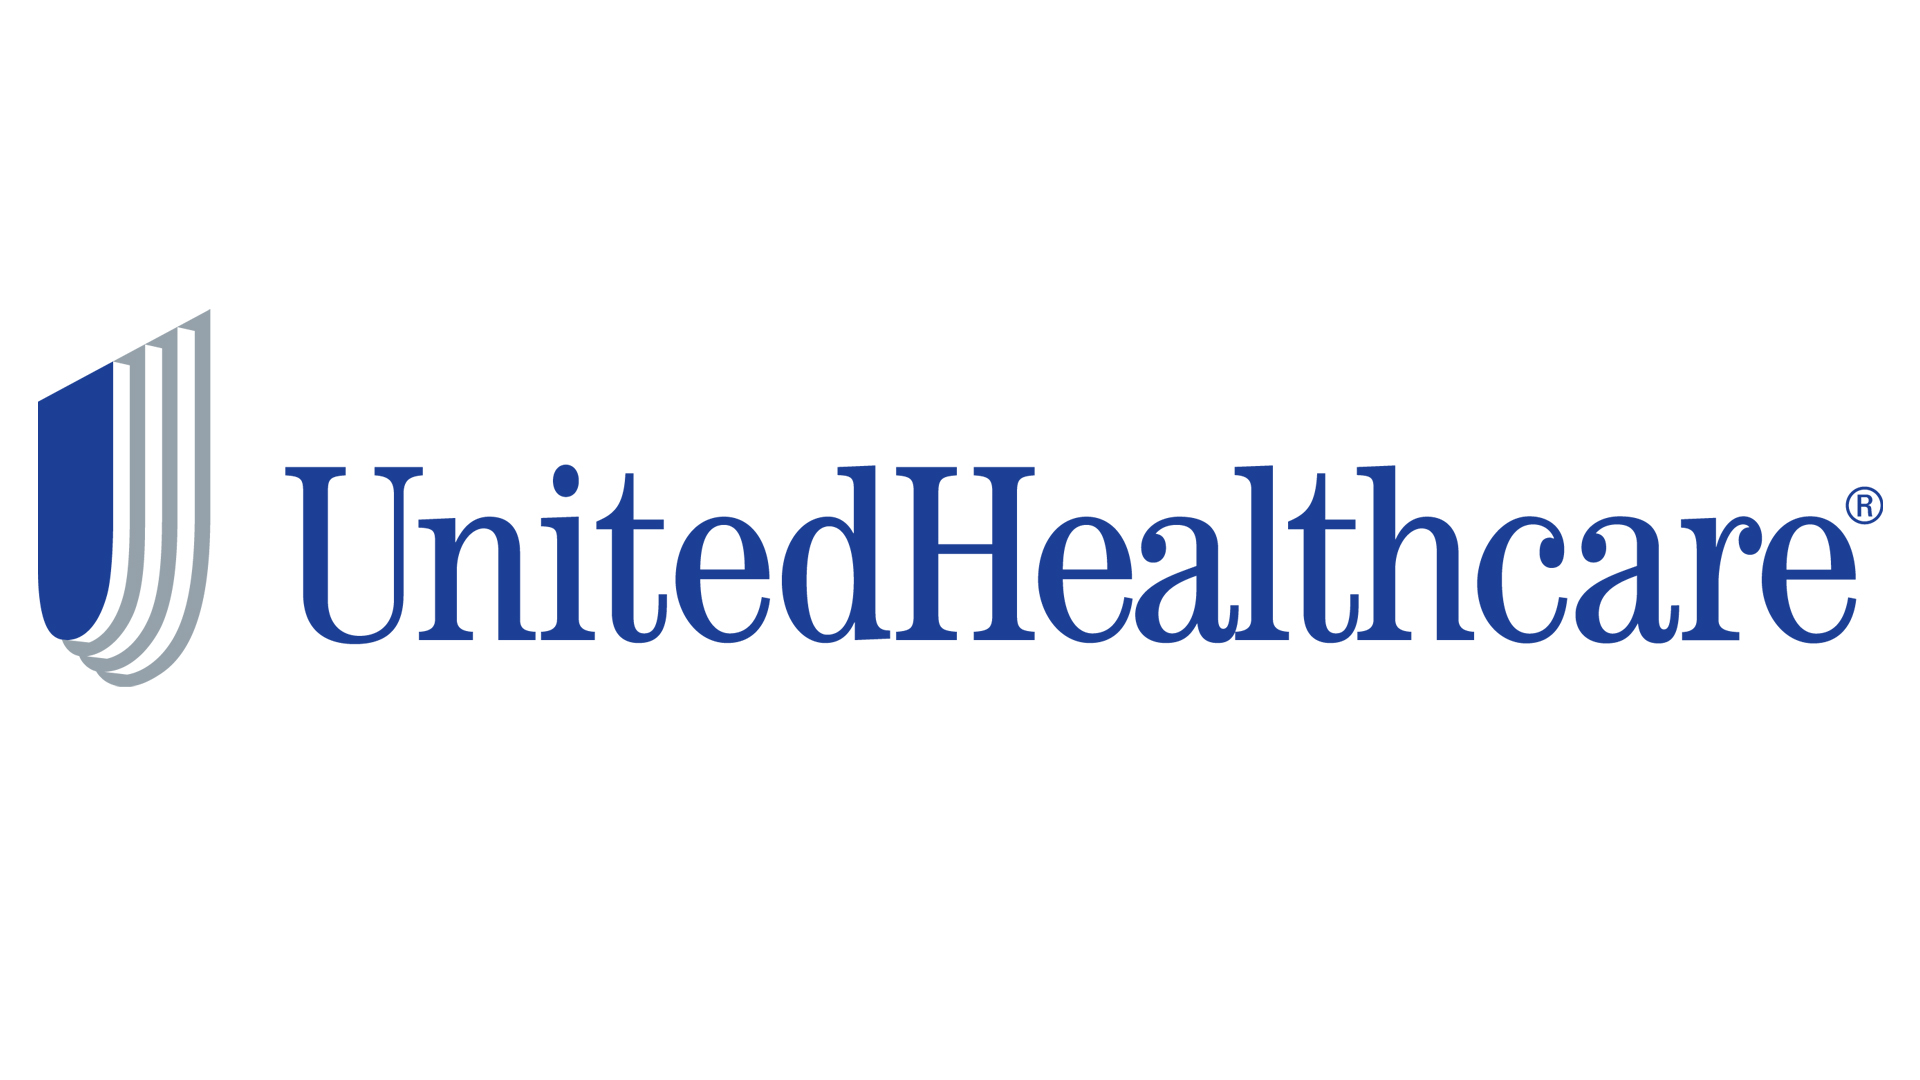 For more information, please visit the    United Healthcare website   .